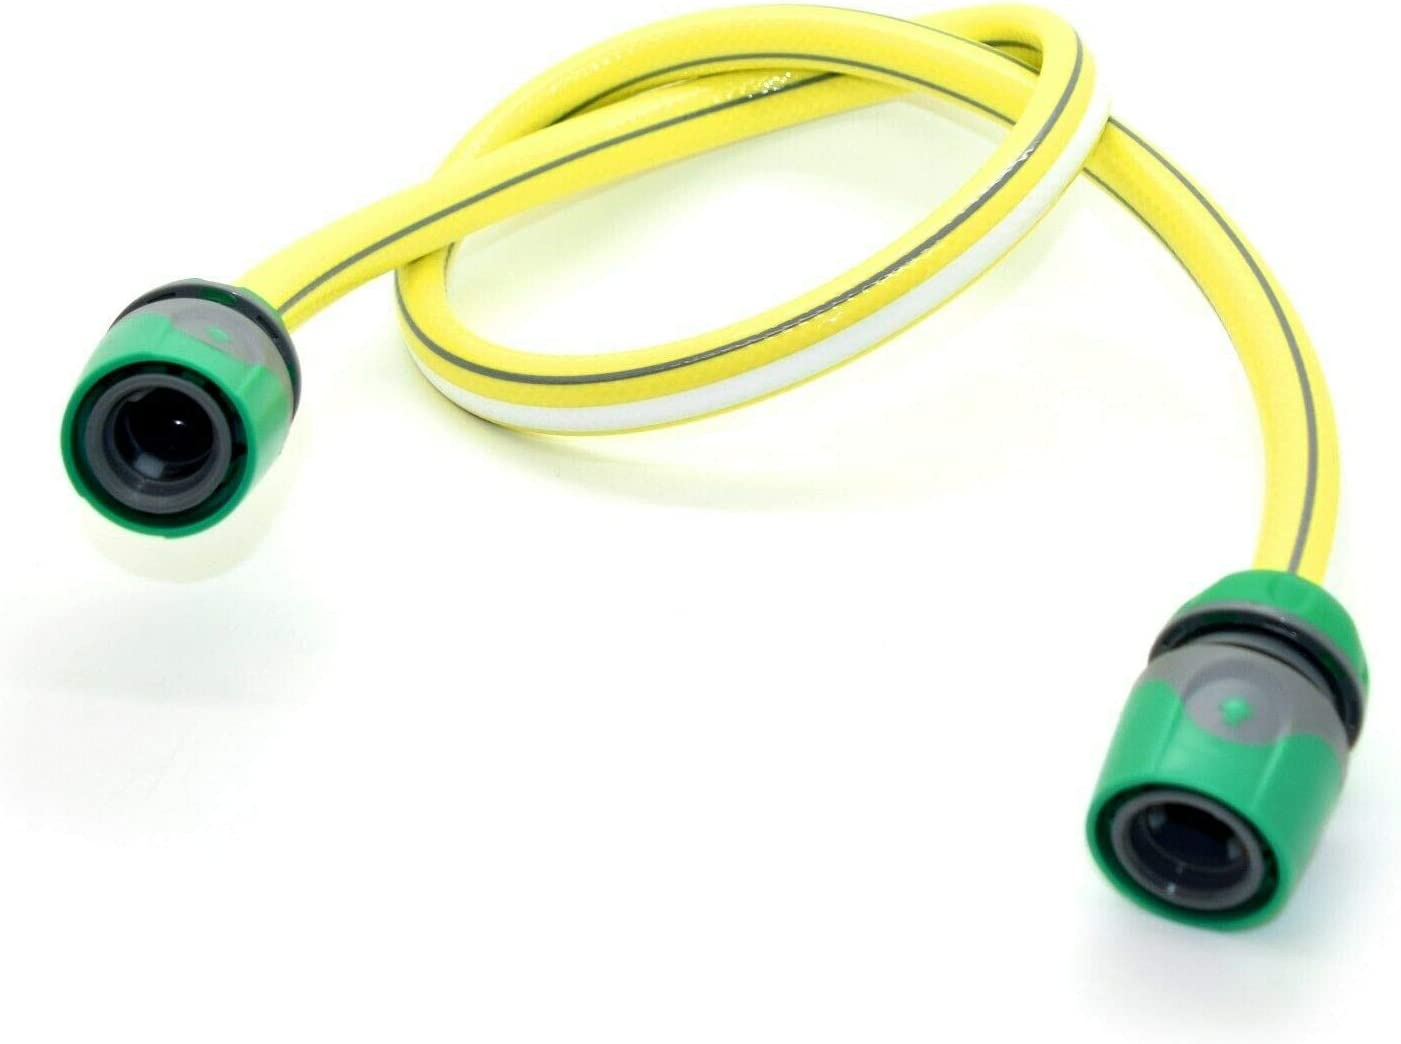 SolaDirect 1 m of 1//2 in 4-Layers Heavy Duty Yellow Garden Hose Reinforced Pipe Outdoor Hosepipe 2 Female Connectors